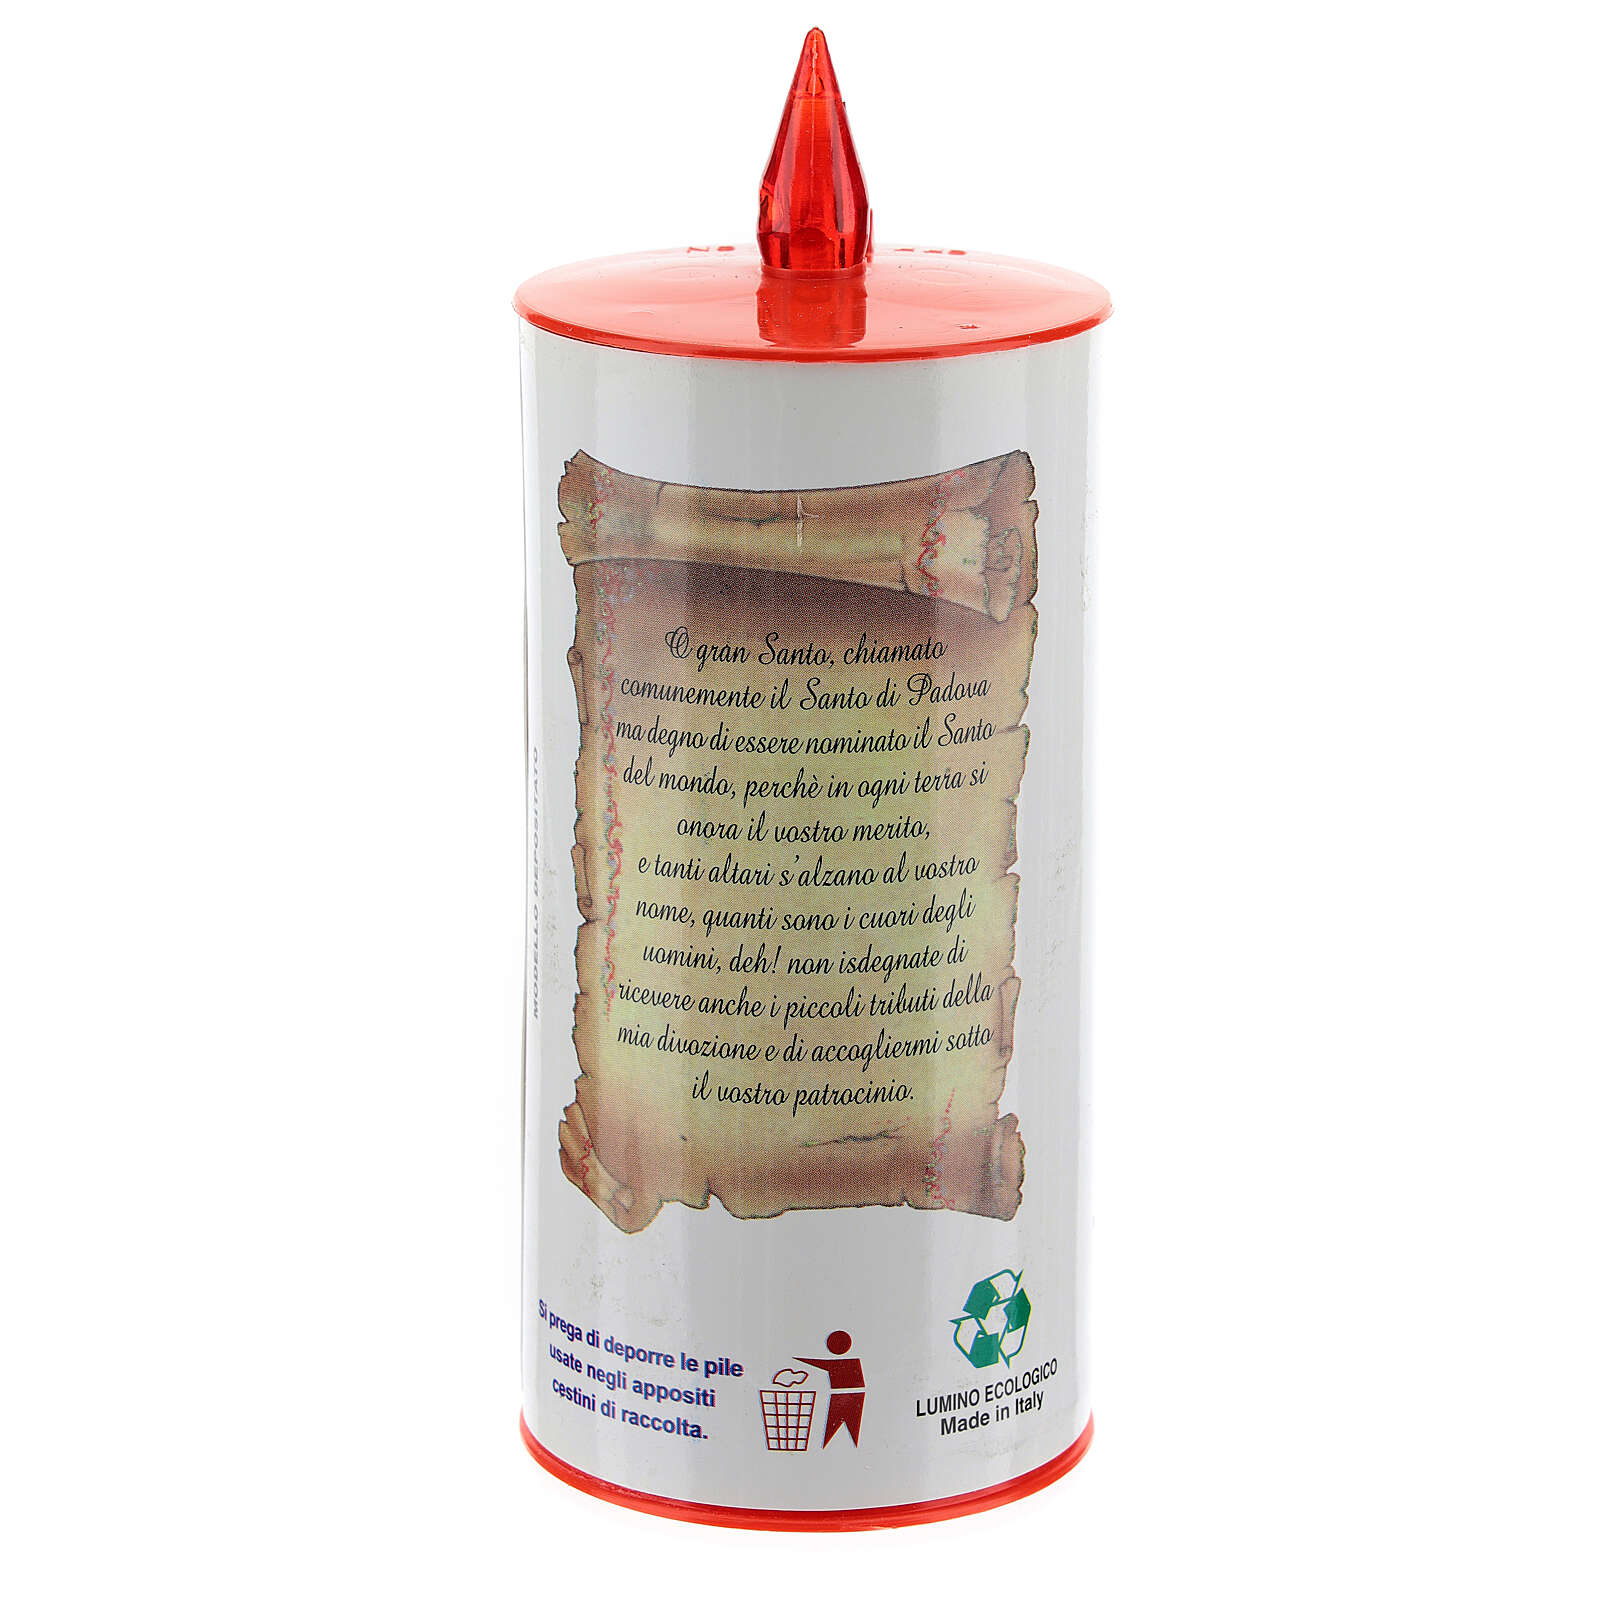 LED votive candle, white cardboard with image, lasting 70 days 3